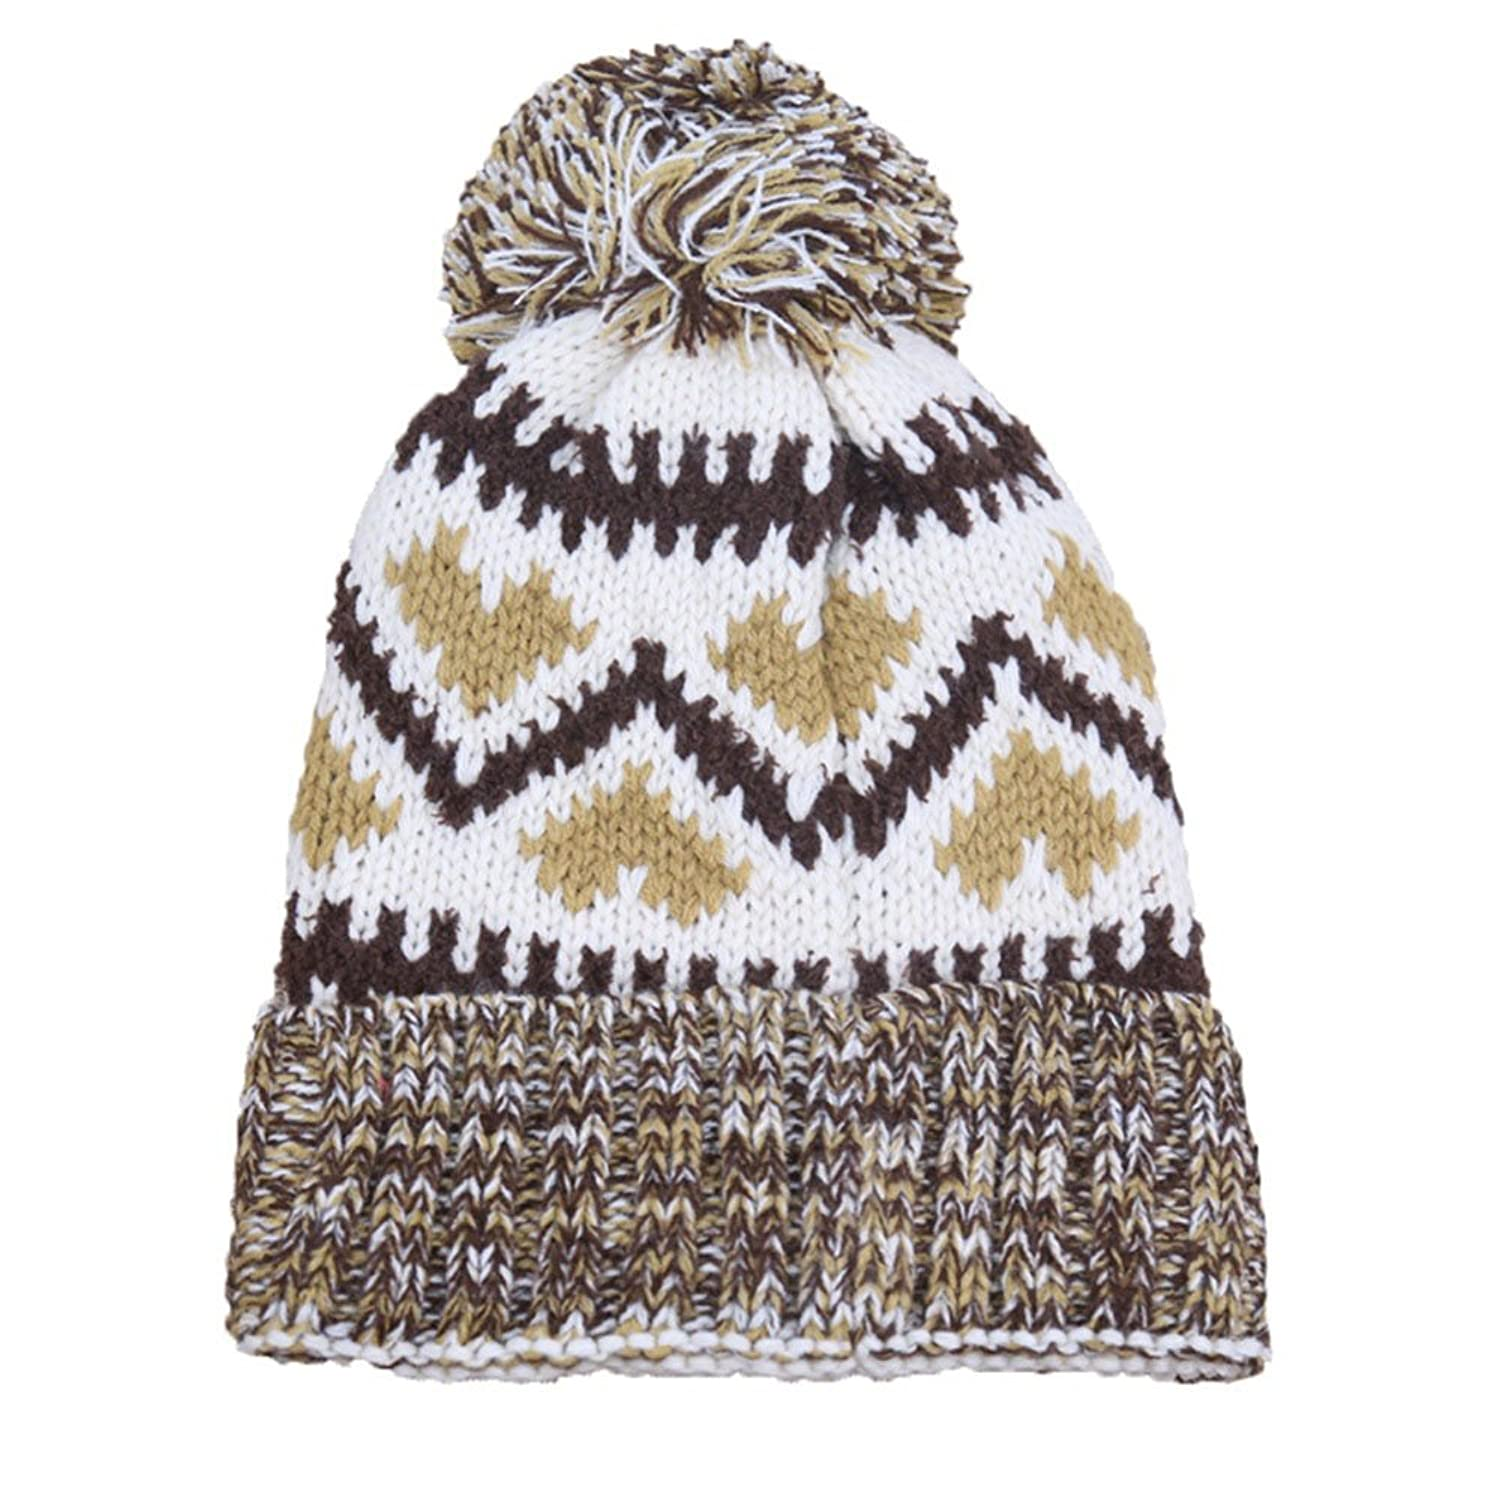 Jenny Shop Women's Winter Beanie Hat Warm Thick Slouchy Cable Knit Cap with Pom Pom